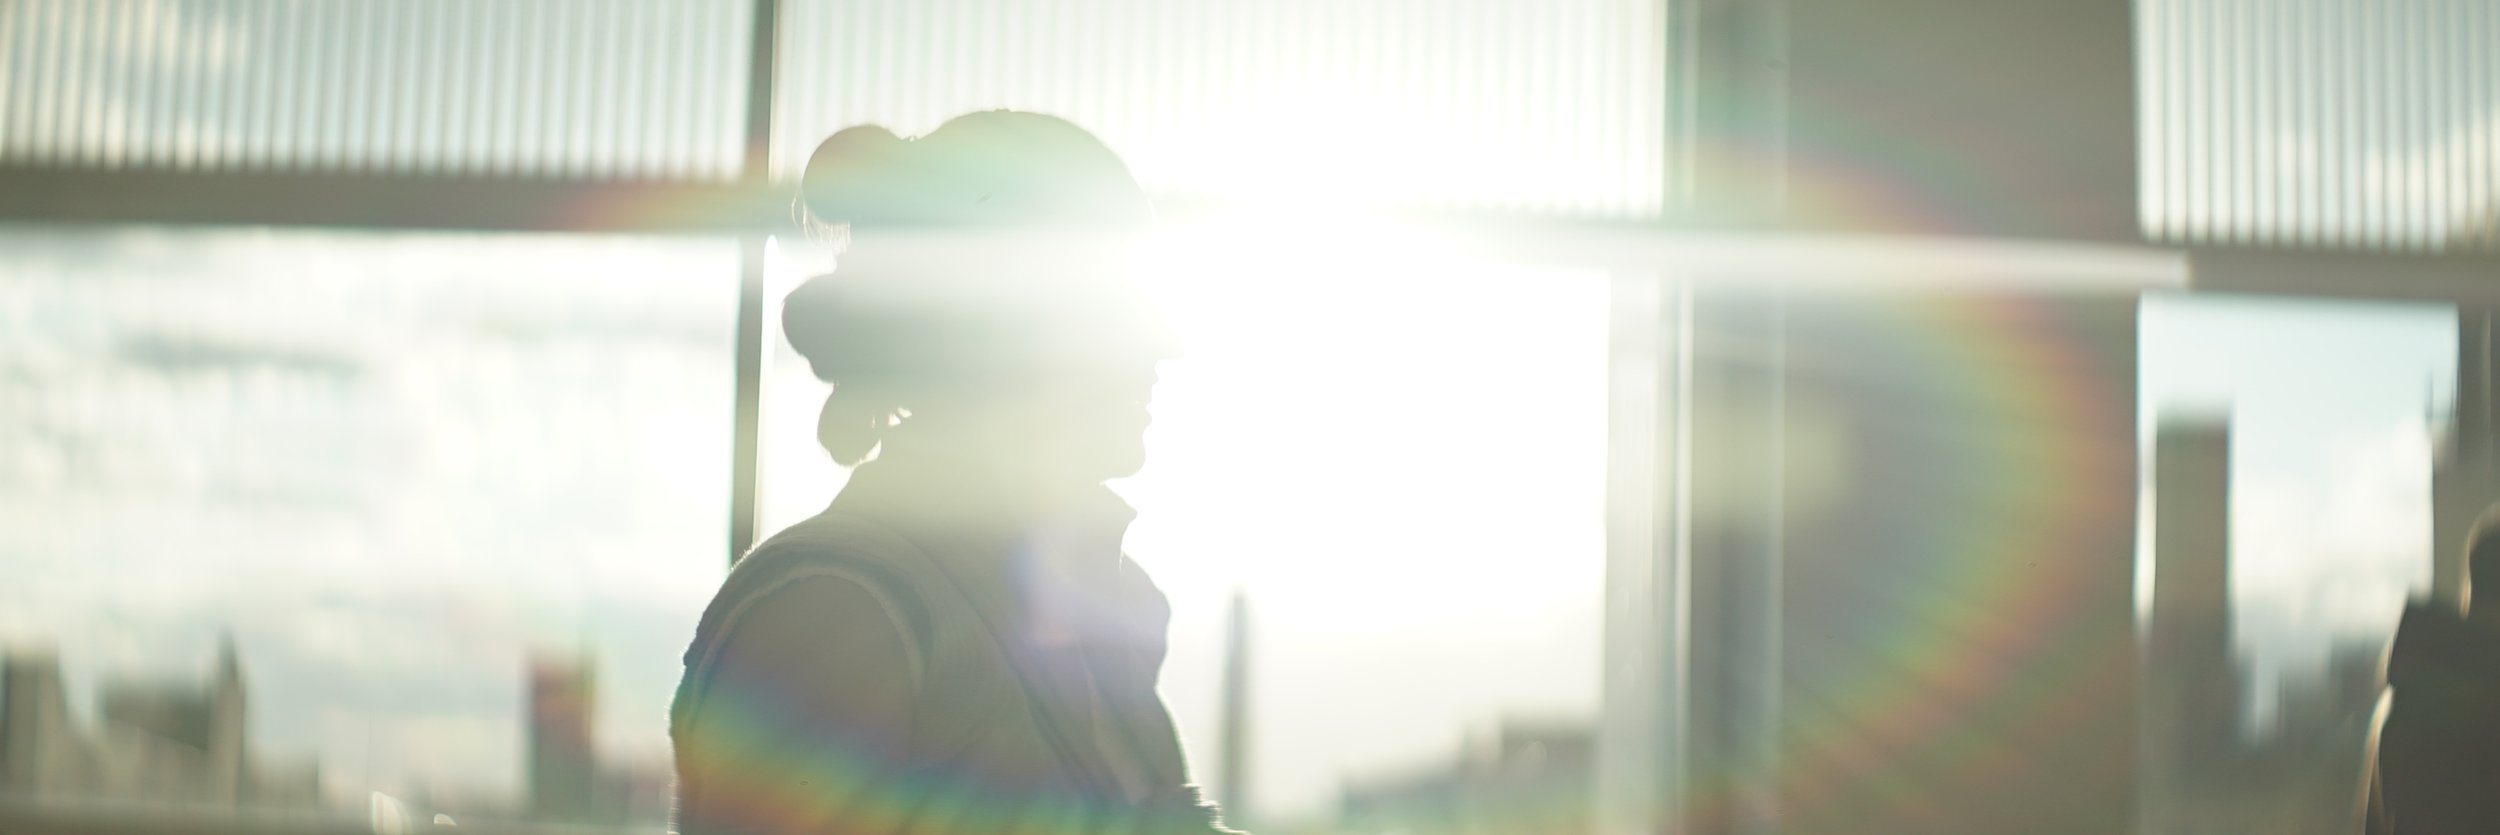 Lomo 75mm Anamorphic Lens | Star Wars Celebration Chicago - SWCC | Olivia dressed as Resistance Rey is overtaken by a giant sun flare. T2.4 - Photo by: Keith Nickoson